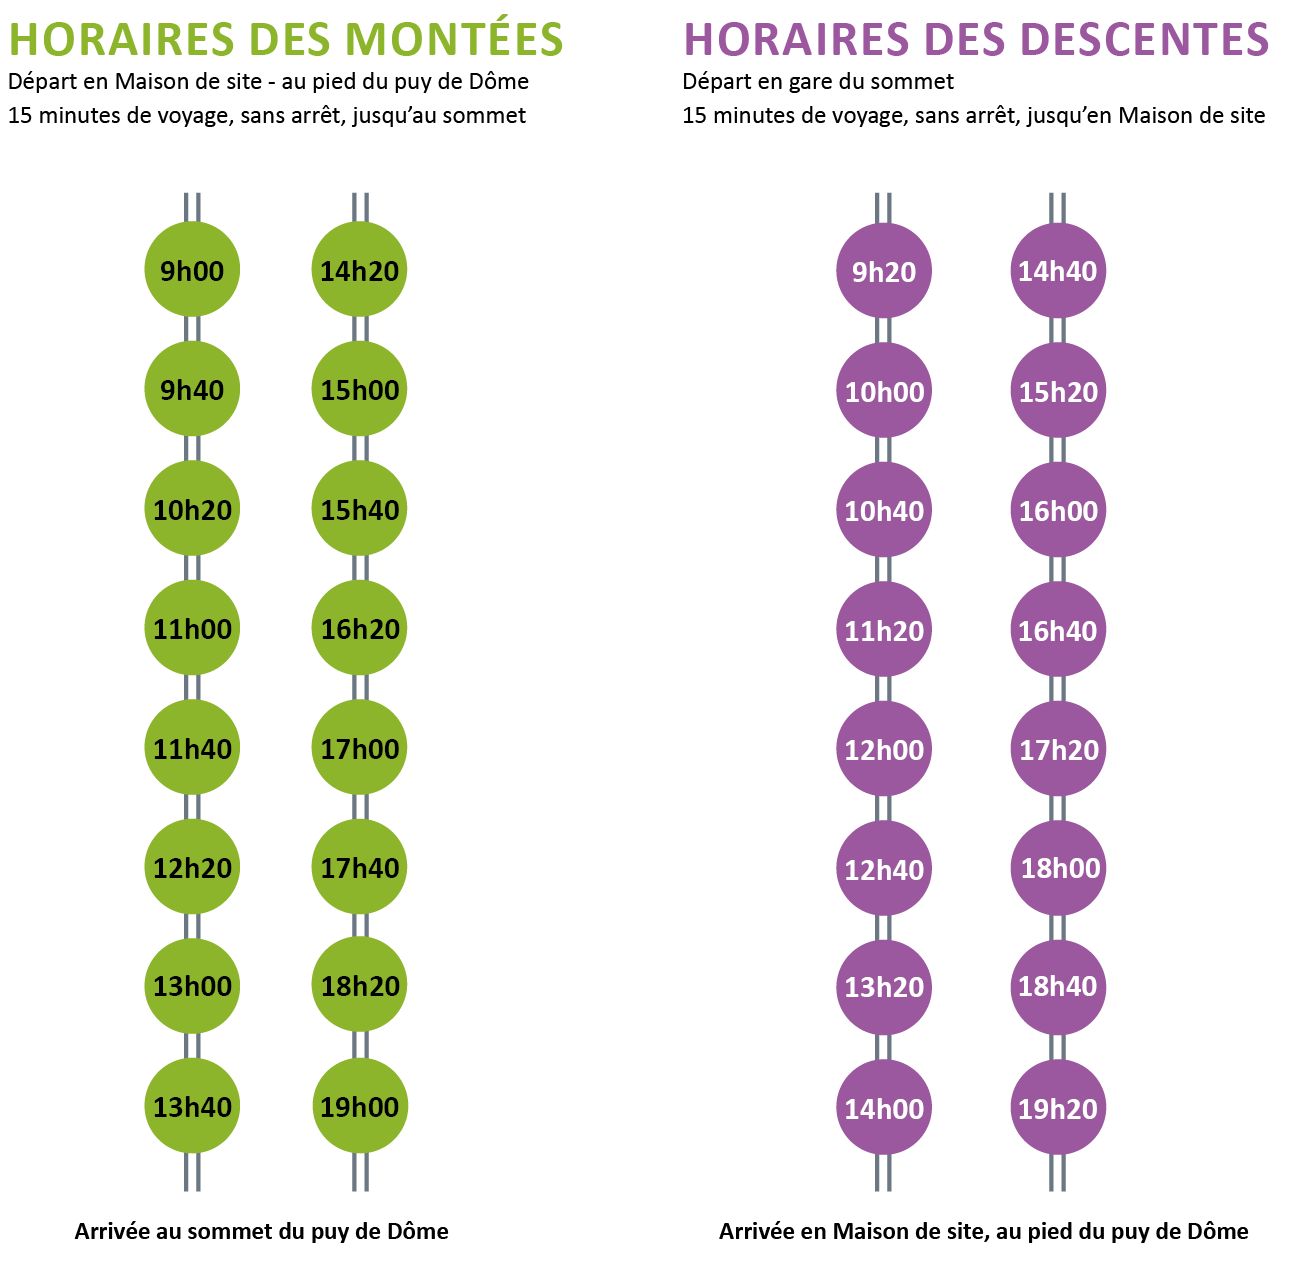 horaires panoramique des Dômes frequence 40 minutes